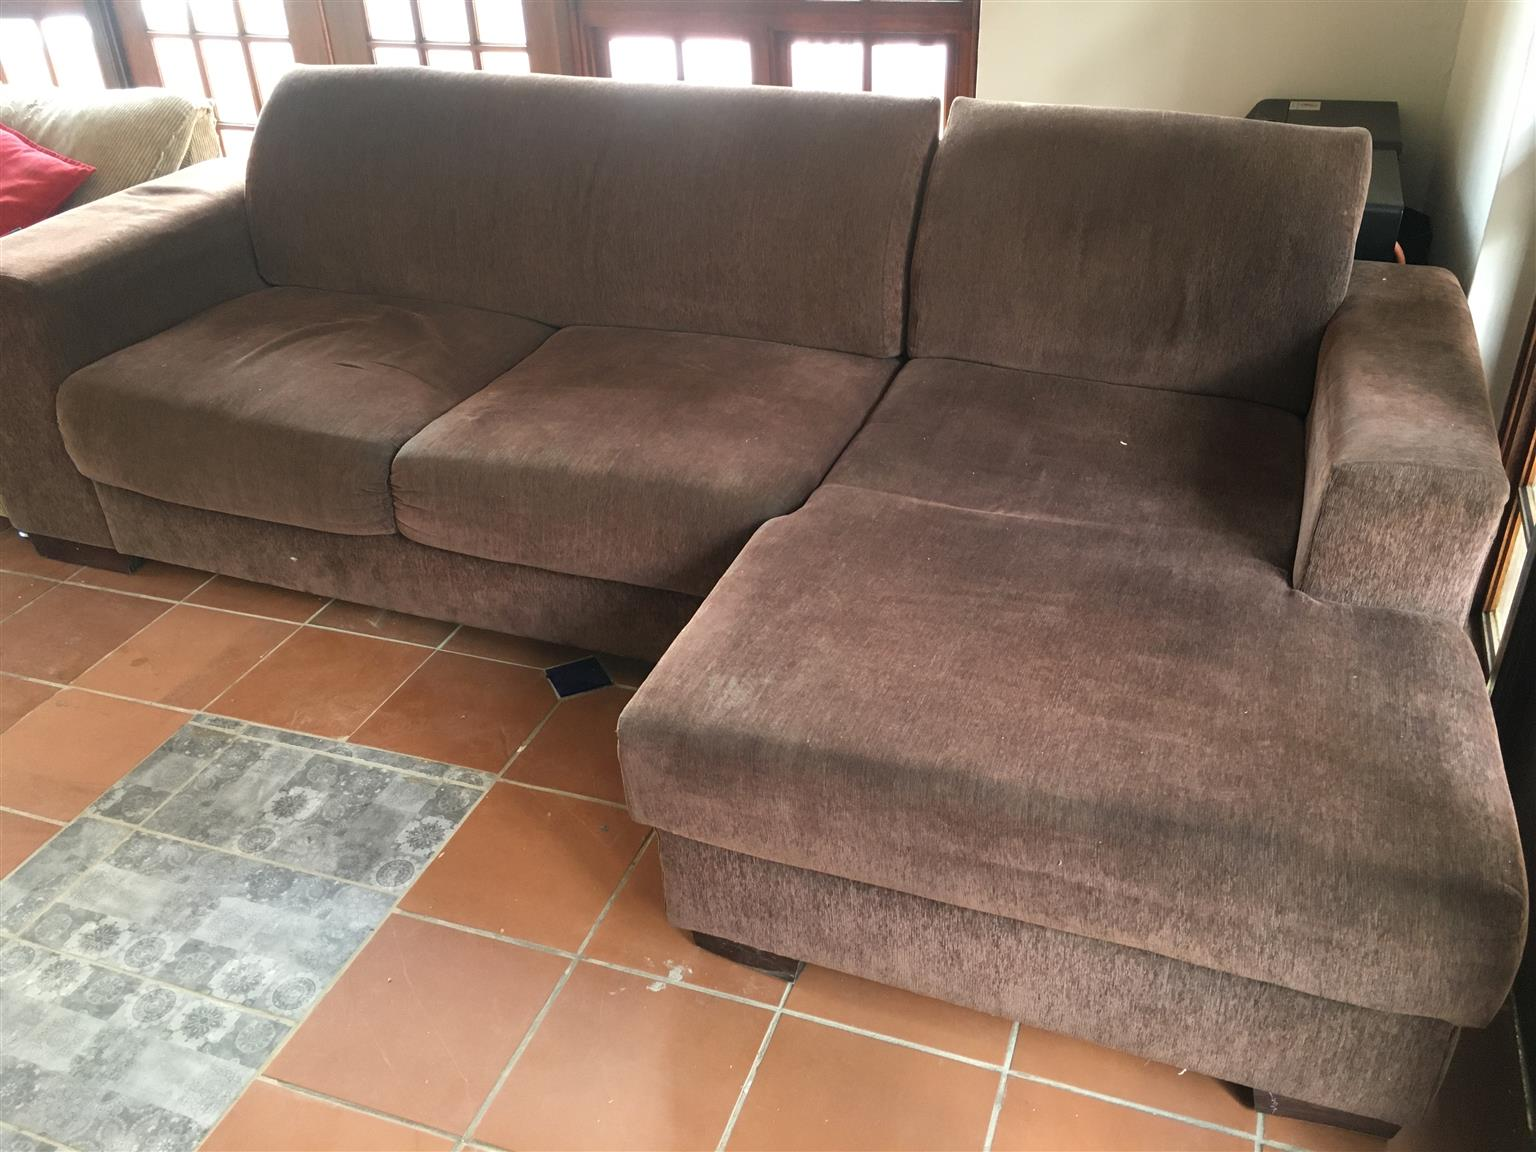 Picture of: L Shape Brown Couch Junk Mail